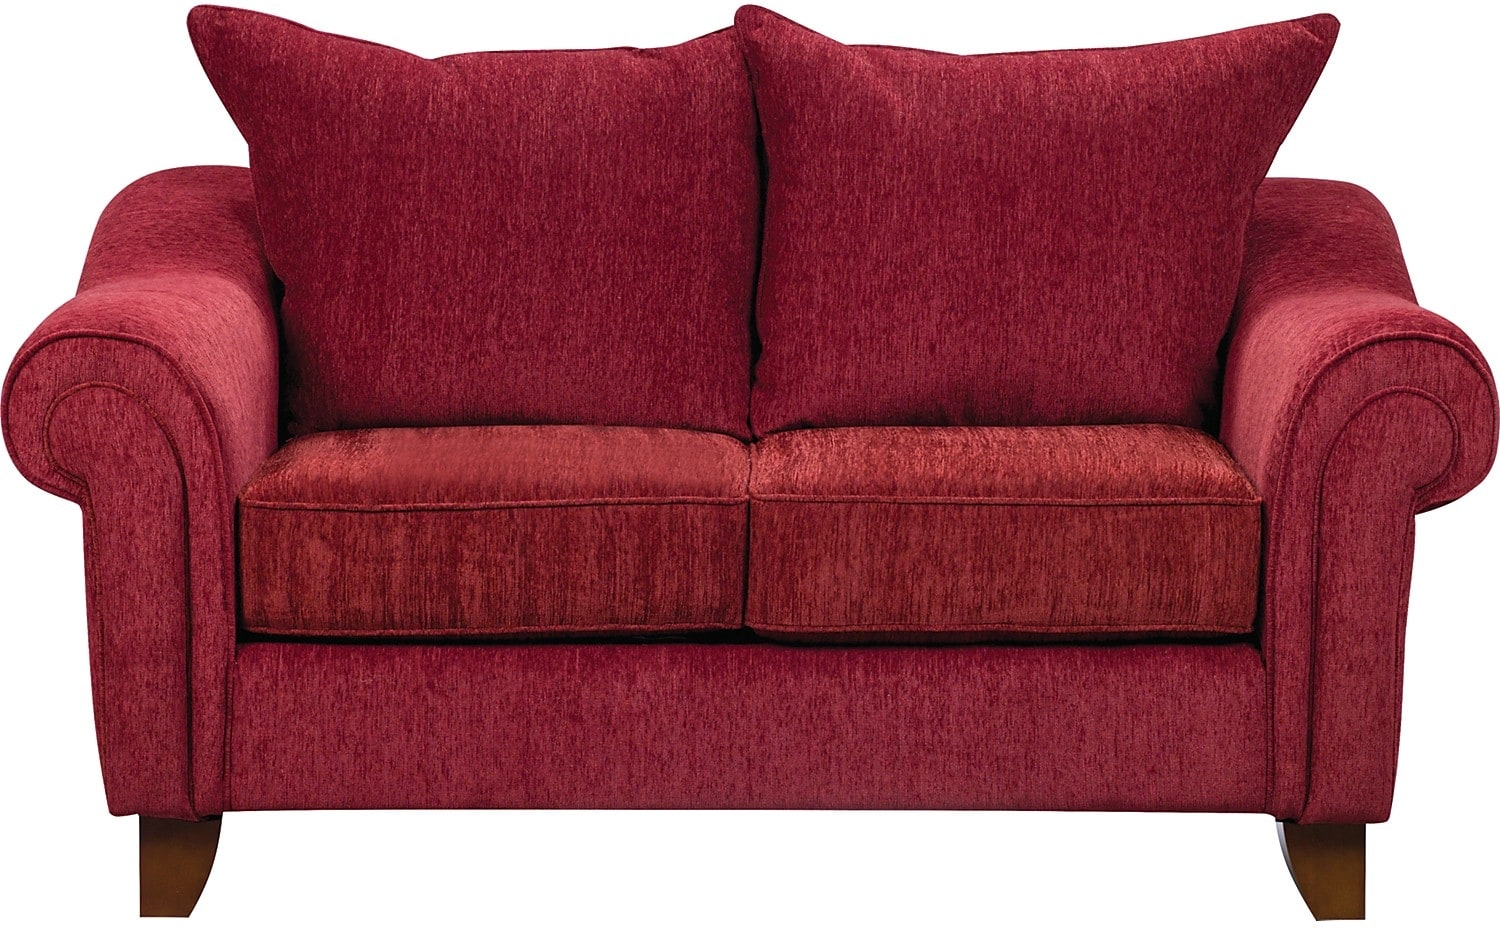 Reese chenille sofa red the brick Chenille sofa and loveseat